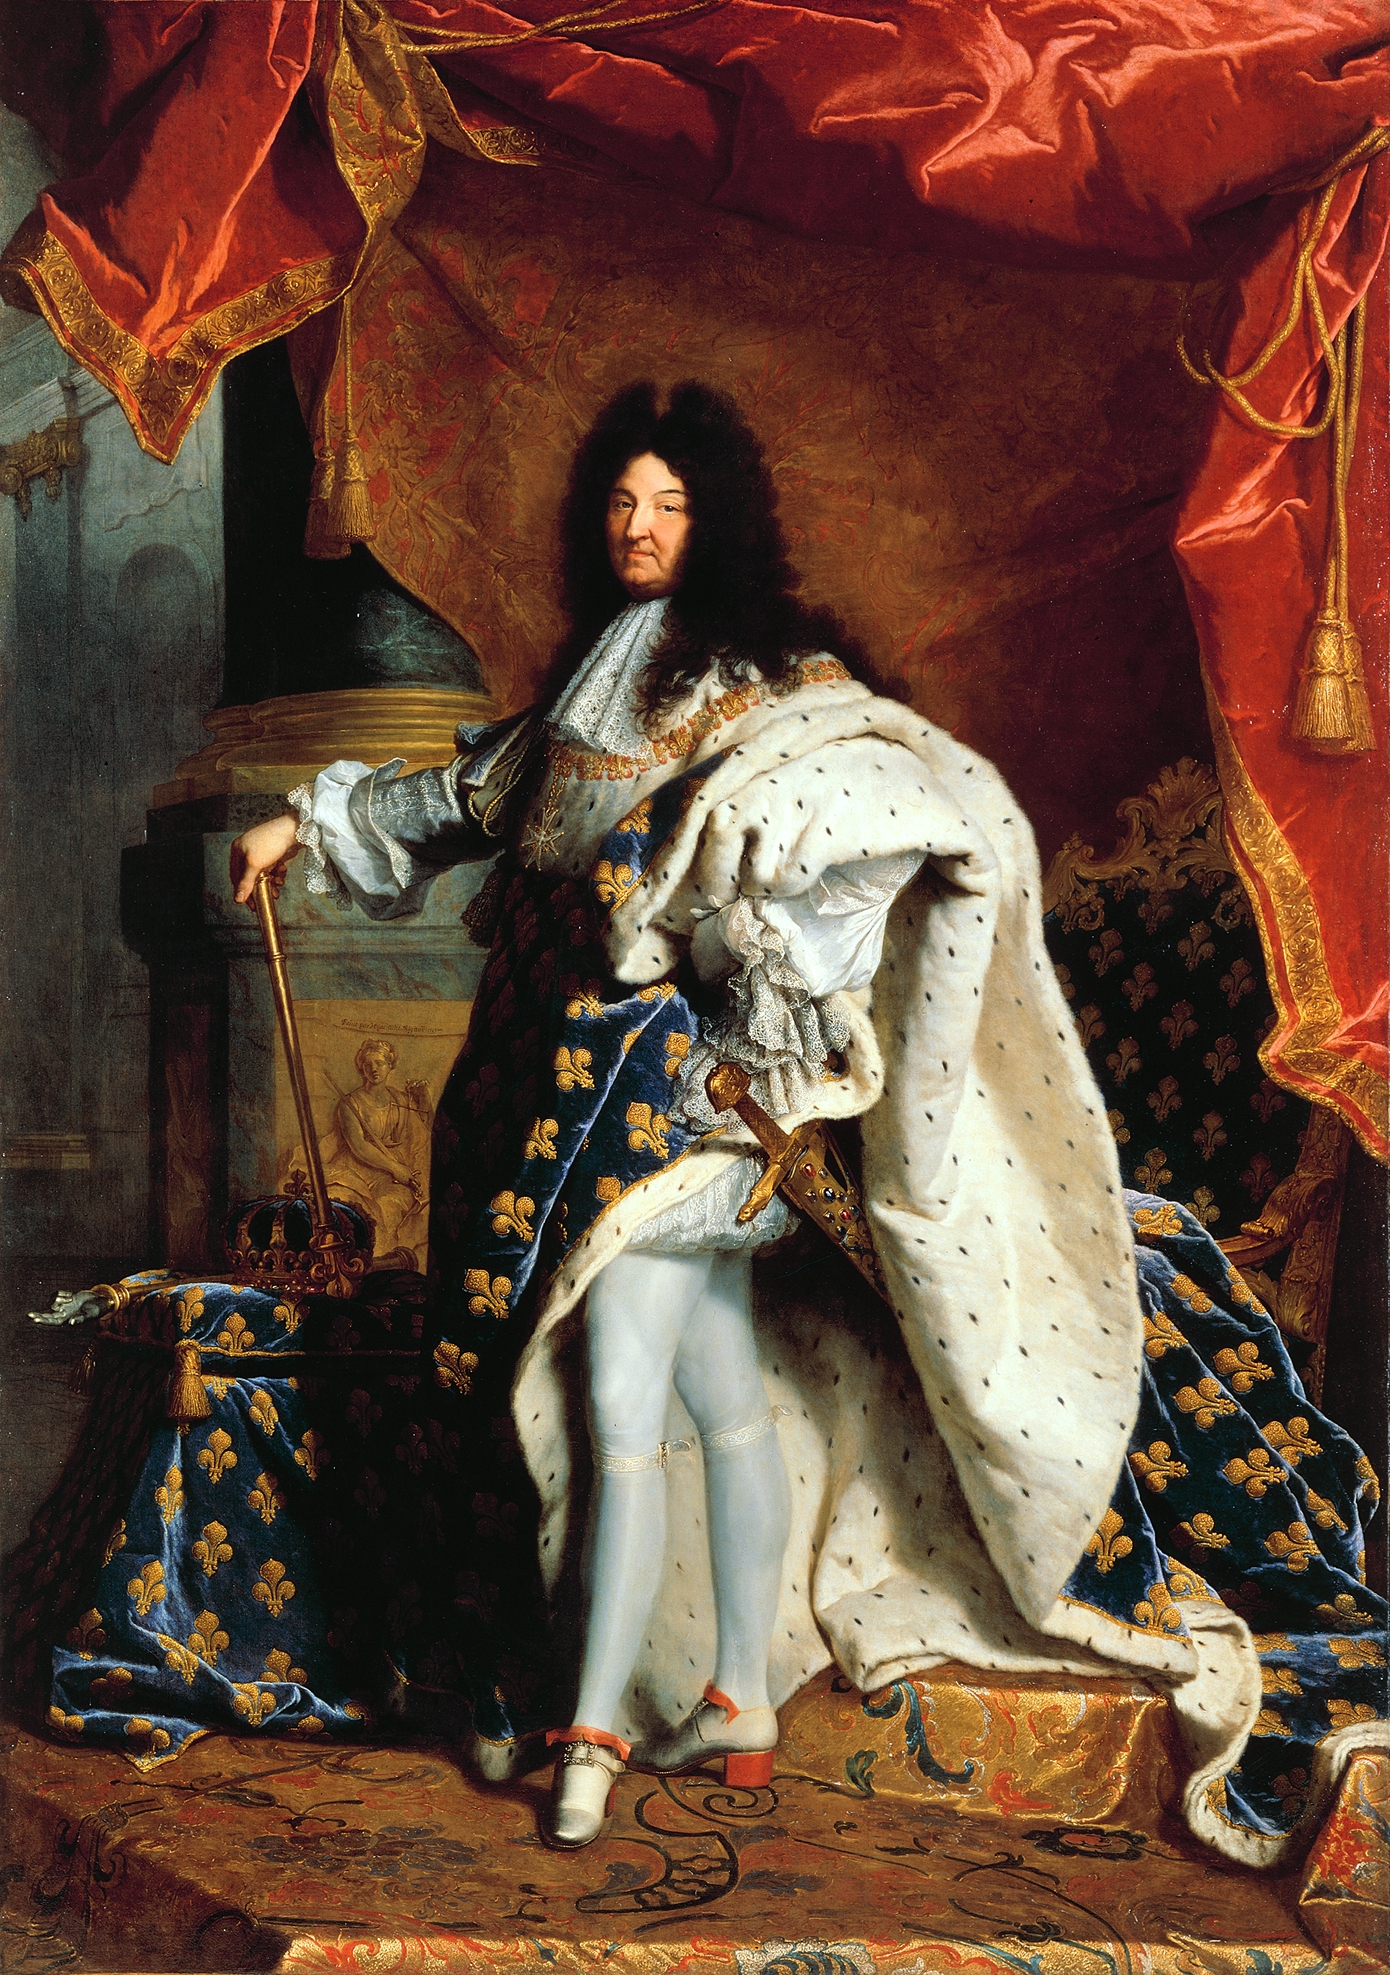 Louis XIV, King of France